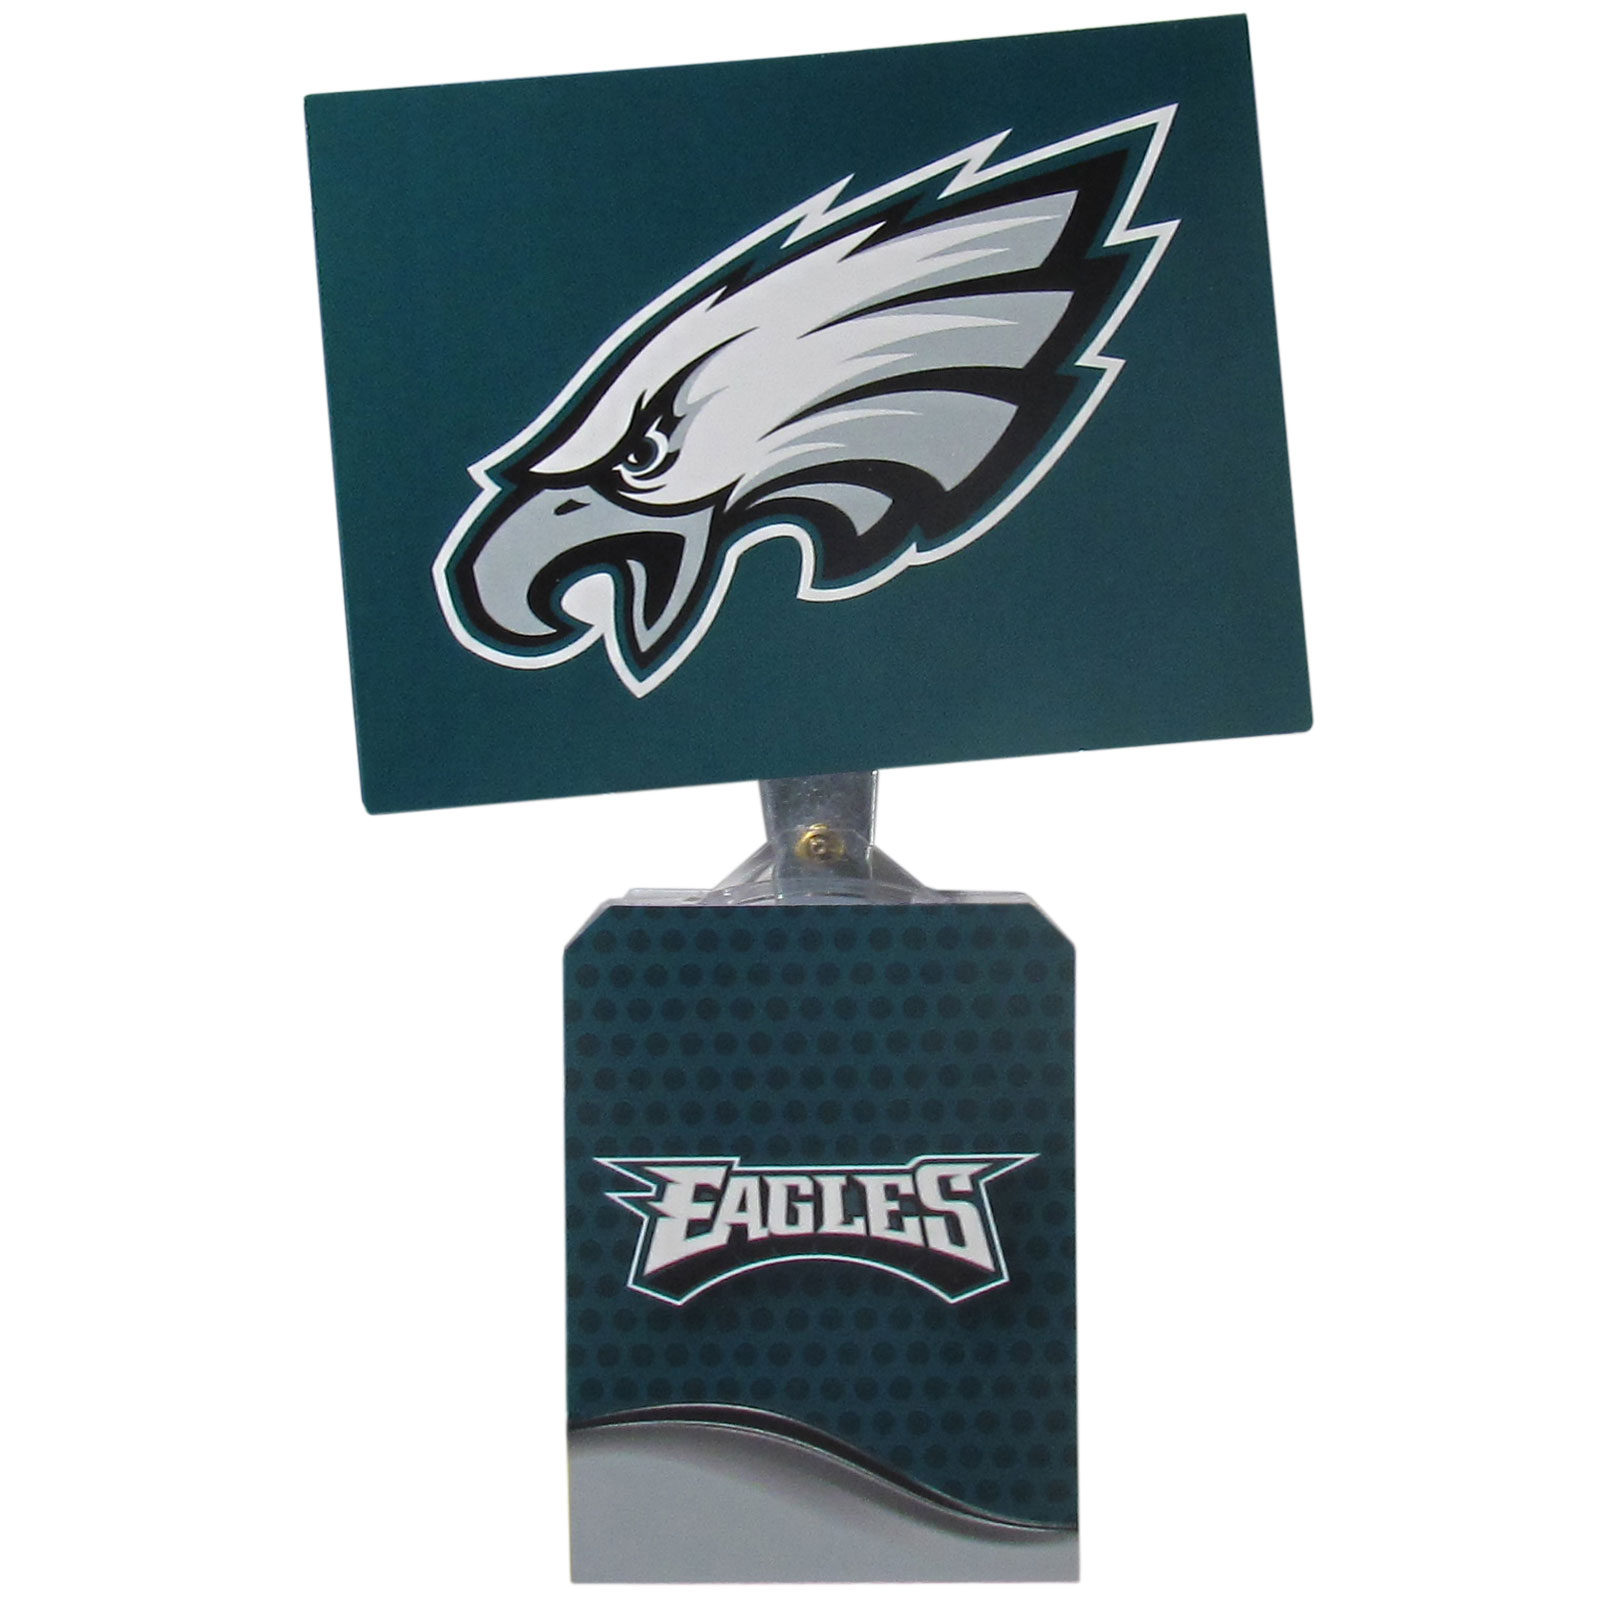 Philadelphia Eagles Solar Flags - Get pumped up on the way to game with Siskiyou's Chicago Bears Philadelphia Eagles Solar Flag that mounts to your dashboard or window. The in-motion solar flag also doubles as decoration for your tailgate or homegate! The base of the flag is 3 inches tall and the flag is 4 inches making the entire in-motion solar flag stand at 7 inches tall. Keep your spirit moving with your favorite team's Solar Flag.